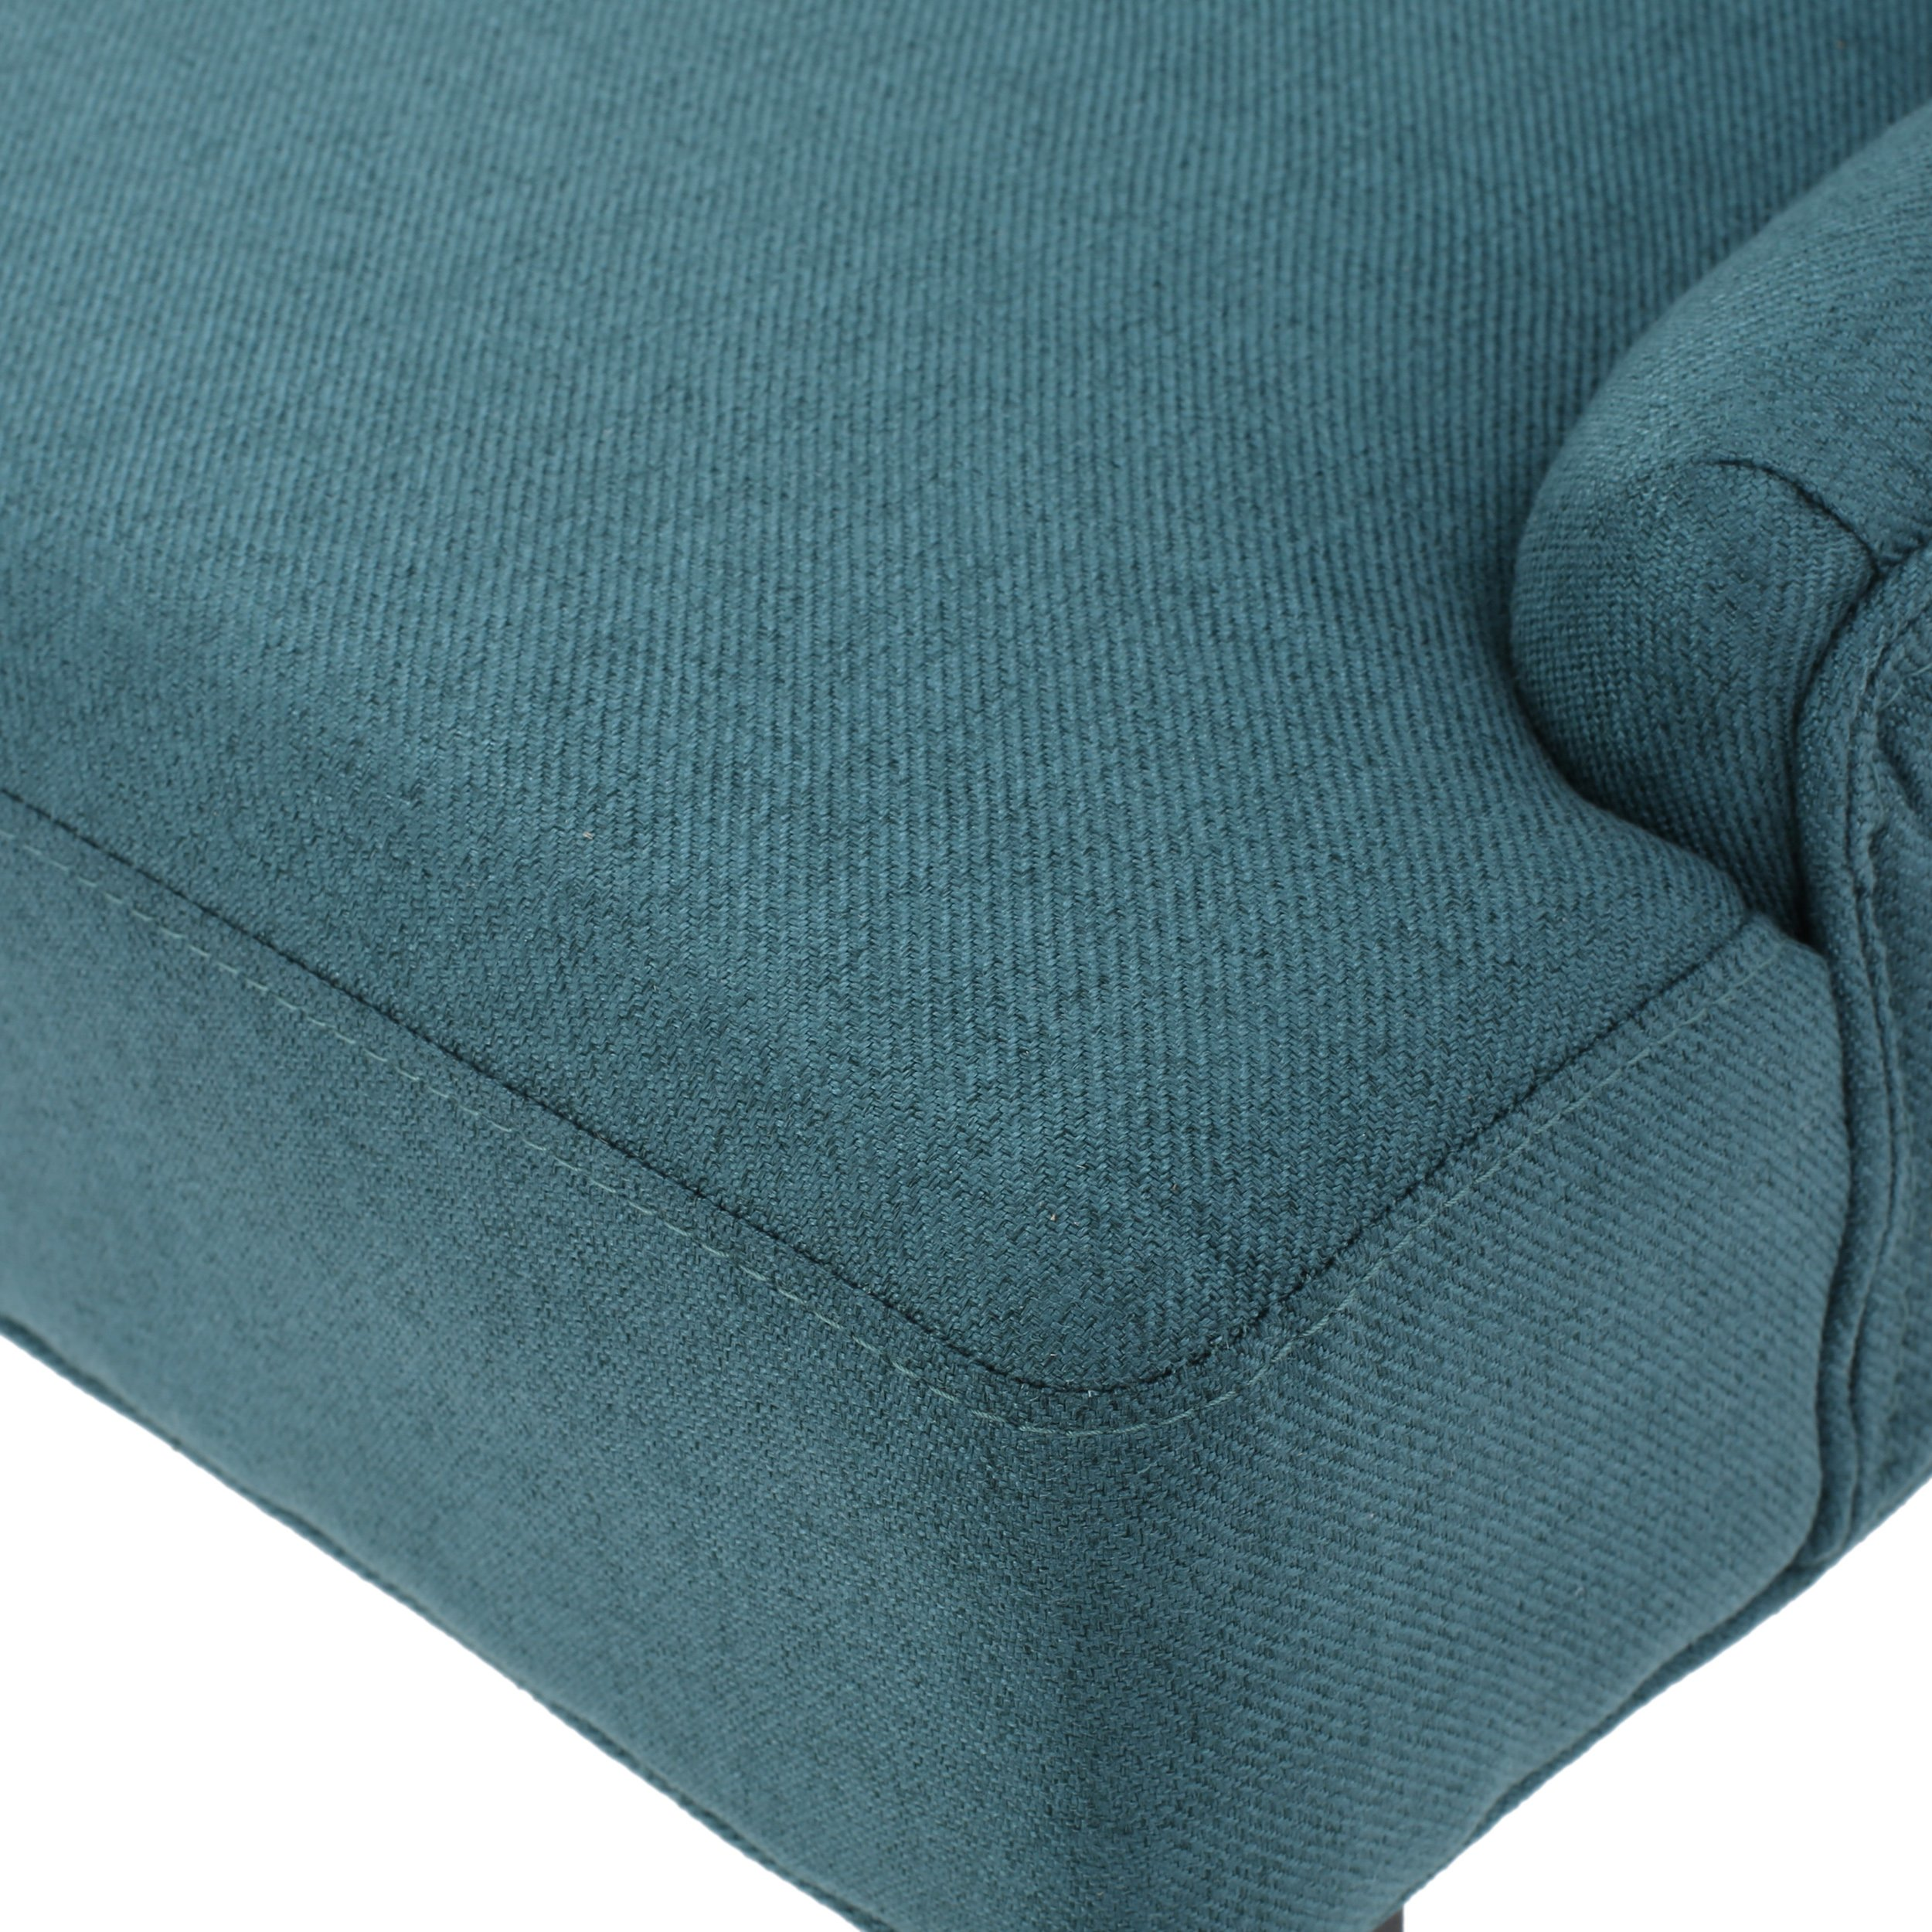 Christopher Knight Home 299537 Hayden Fabric Dining Chairs (Set of 2) Dark Teal by Christopher Knight Home (Image #6)